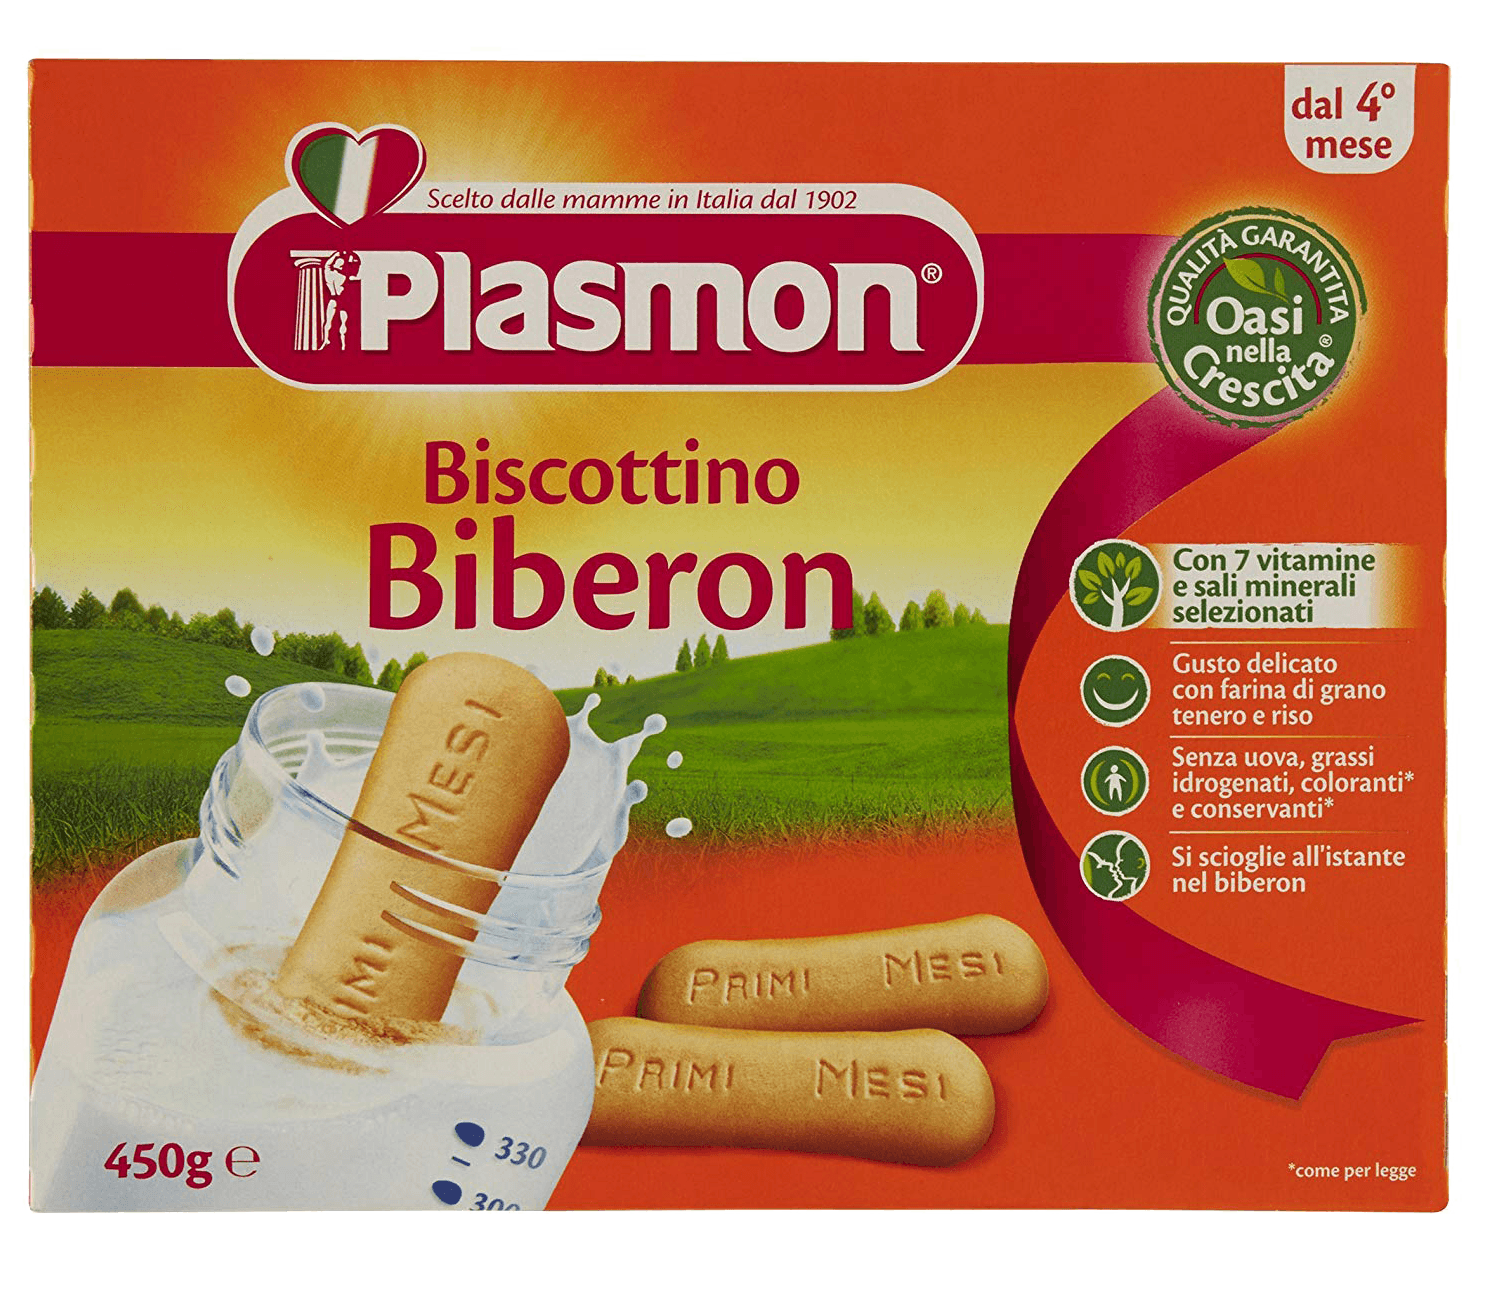 Plasmon Biscottino Biberon - For Babies 4 Months And Up - 2 Pack